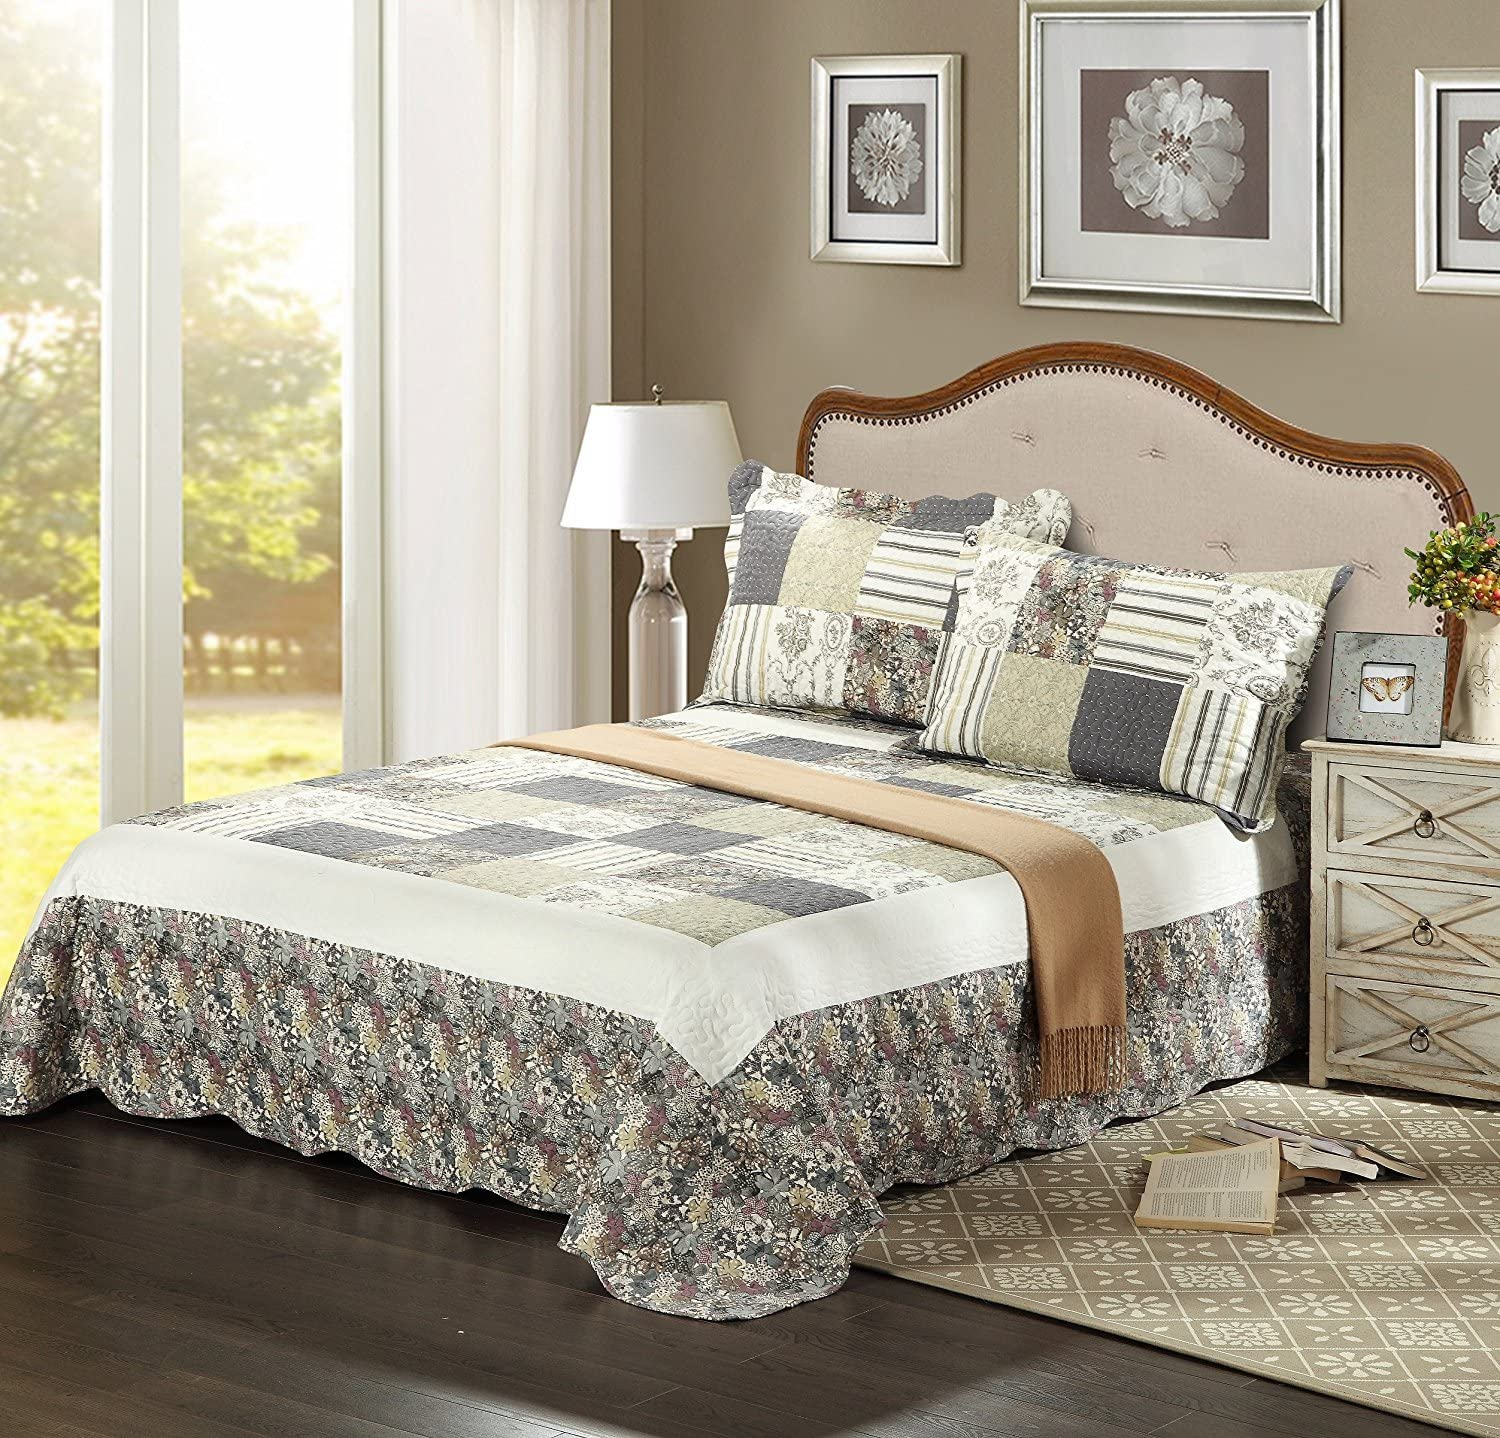 Tache Home Fashion SD2876-Twin Tache 2 Piece Checkered Morning Flower Galore Reversible Bedspread Quilt Set, Twin